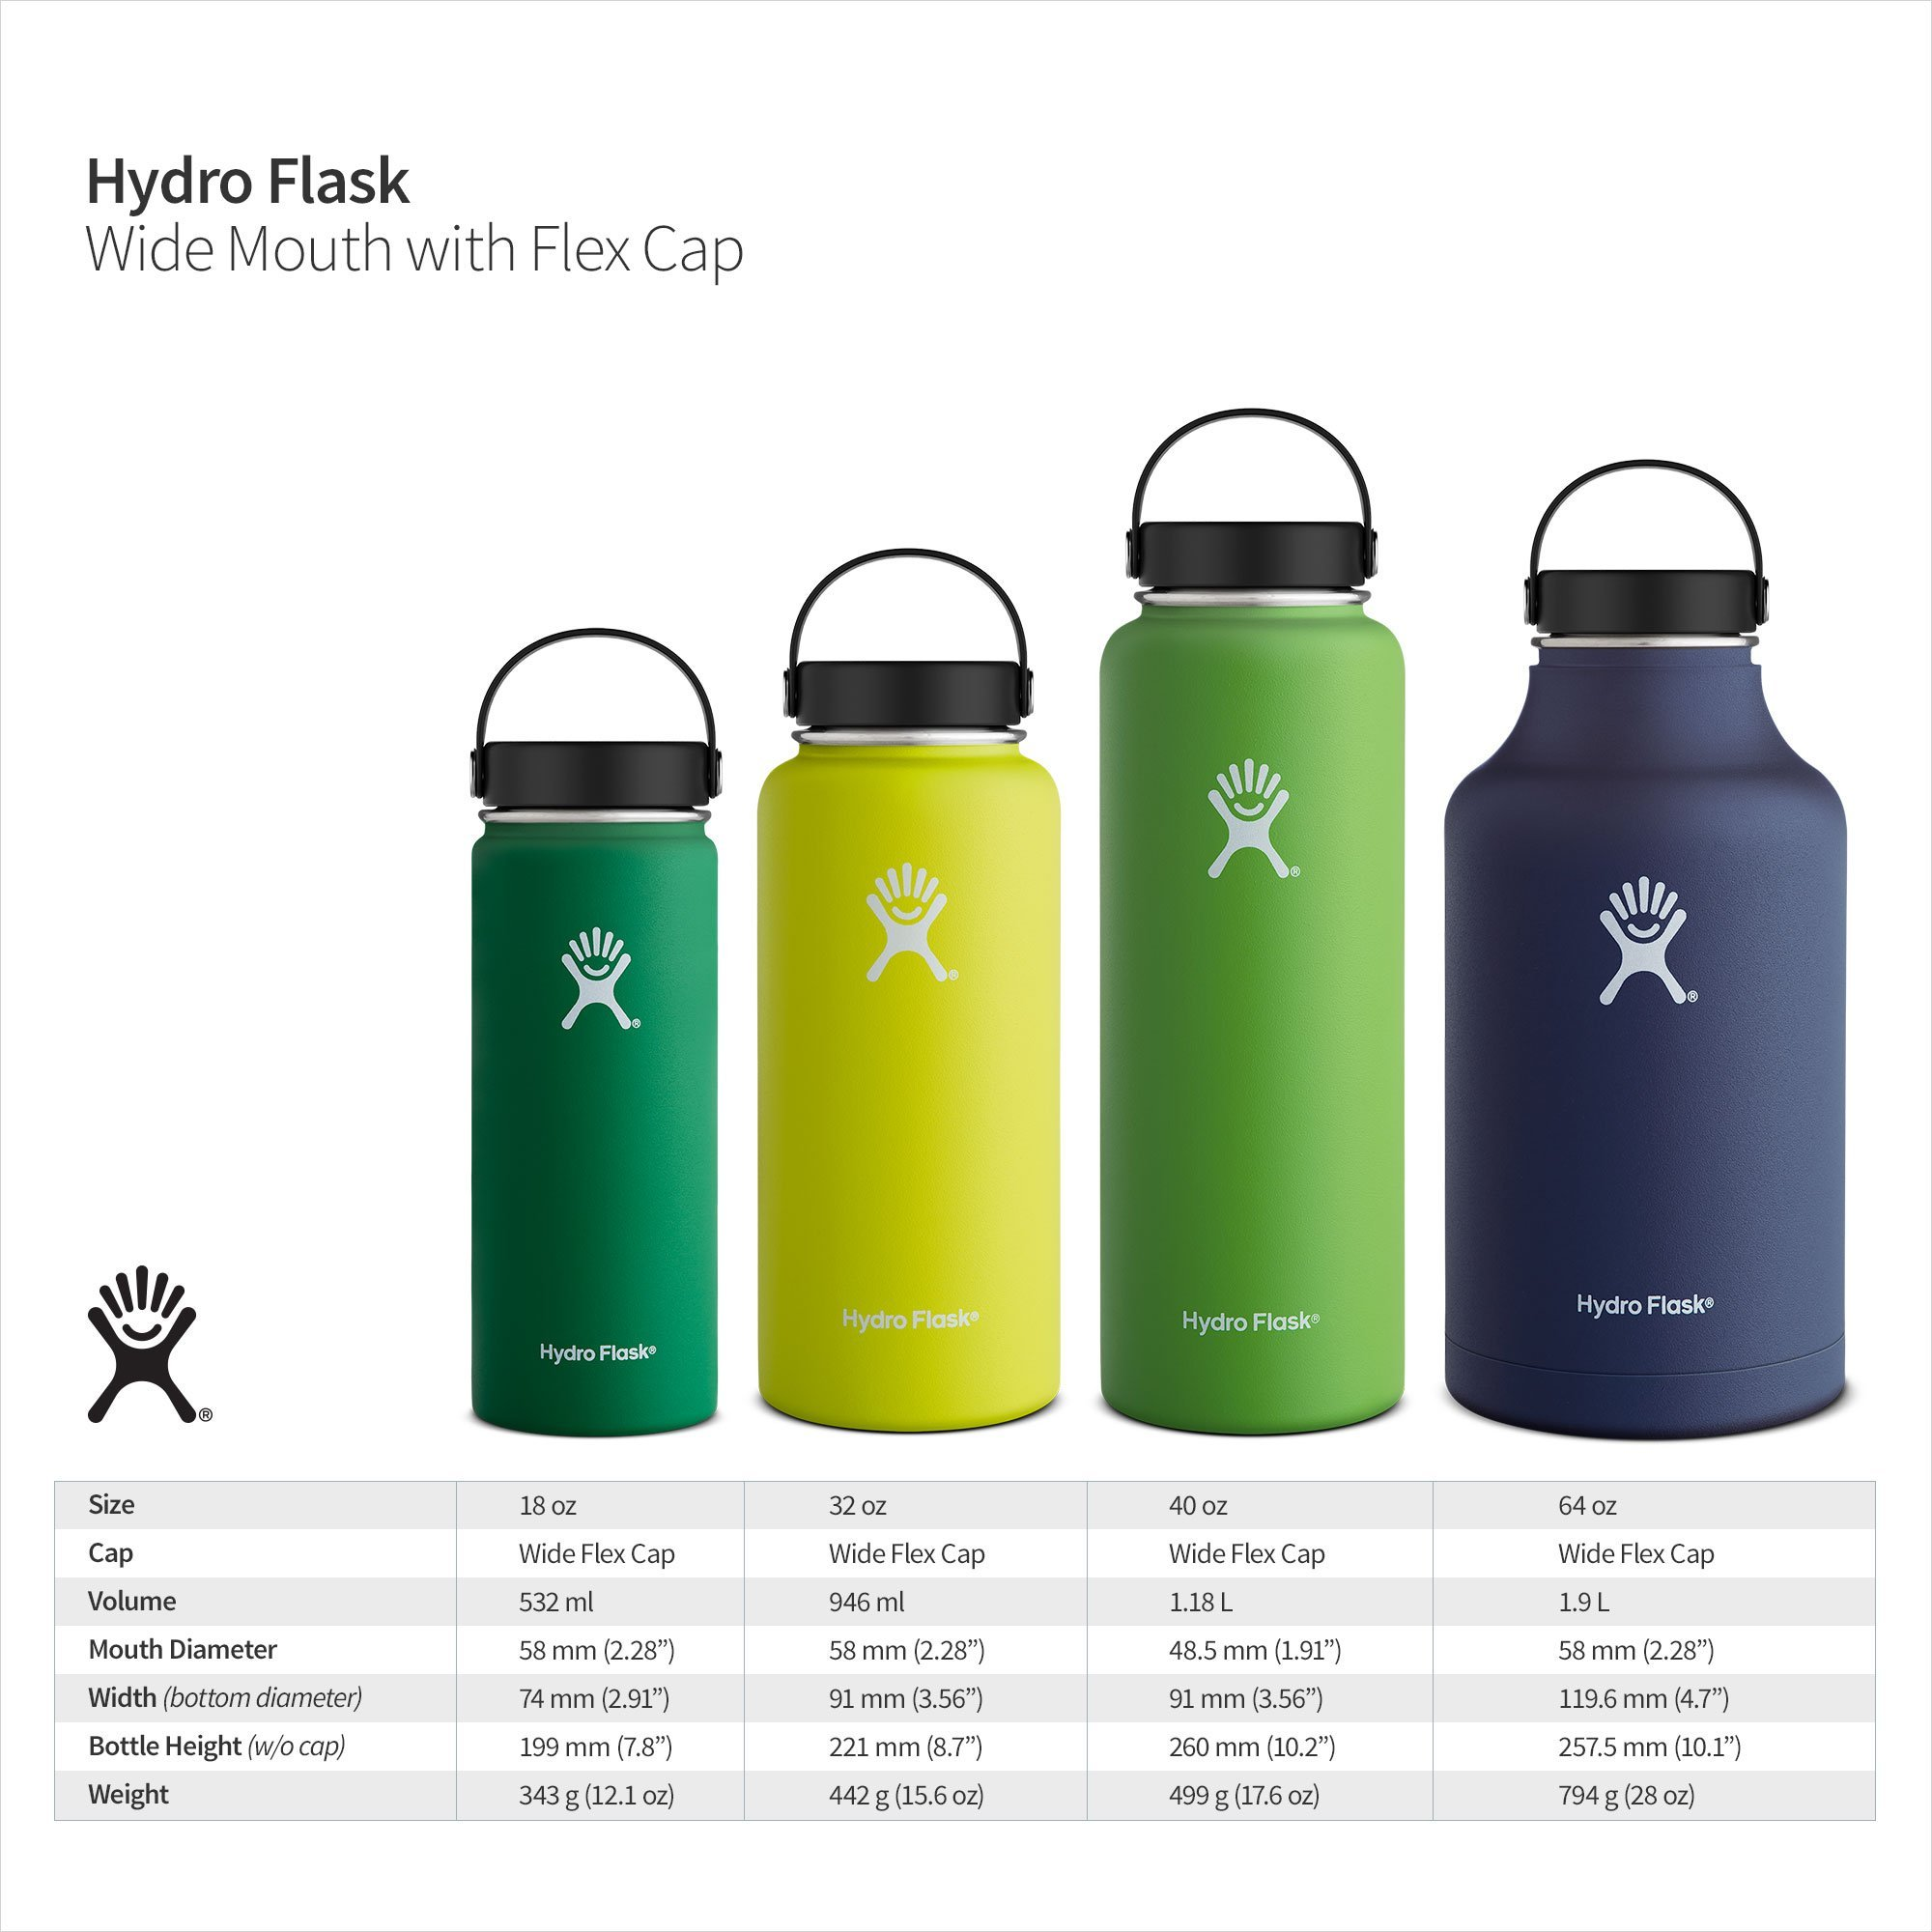 Hydro Flask 32 oz Double Wall Vacuum Insulated Stainless Steel Leak Proof Sports Water Bottle, Wide Mouth with BPA Free Flex Cap, Cobalt by Hydro Flask (Image #3)